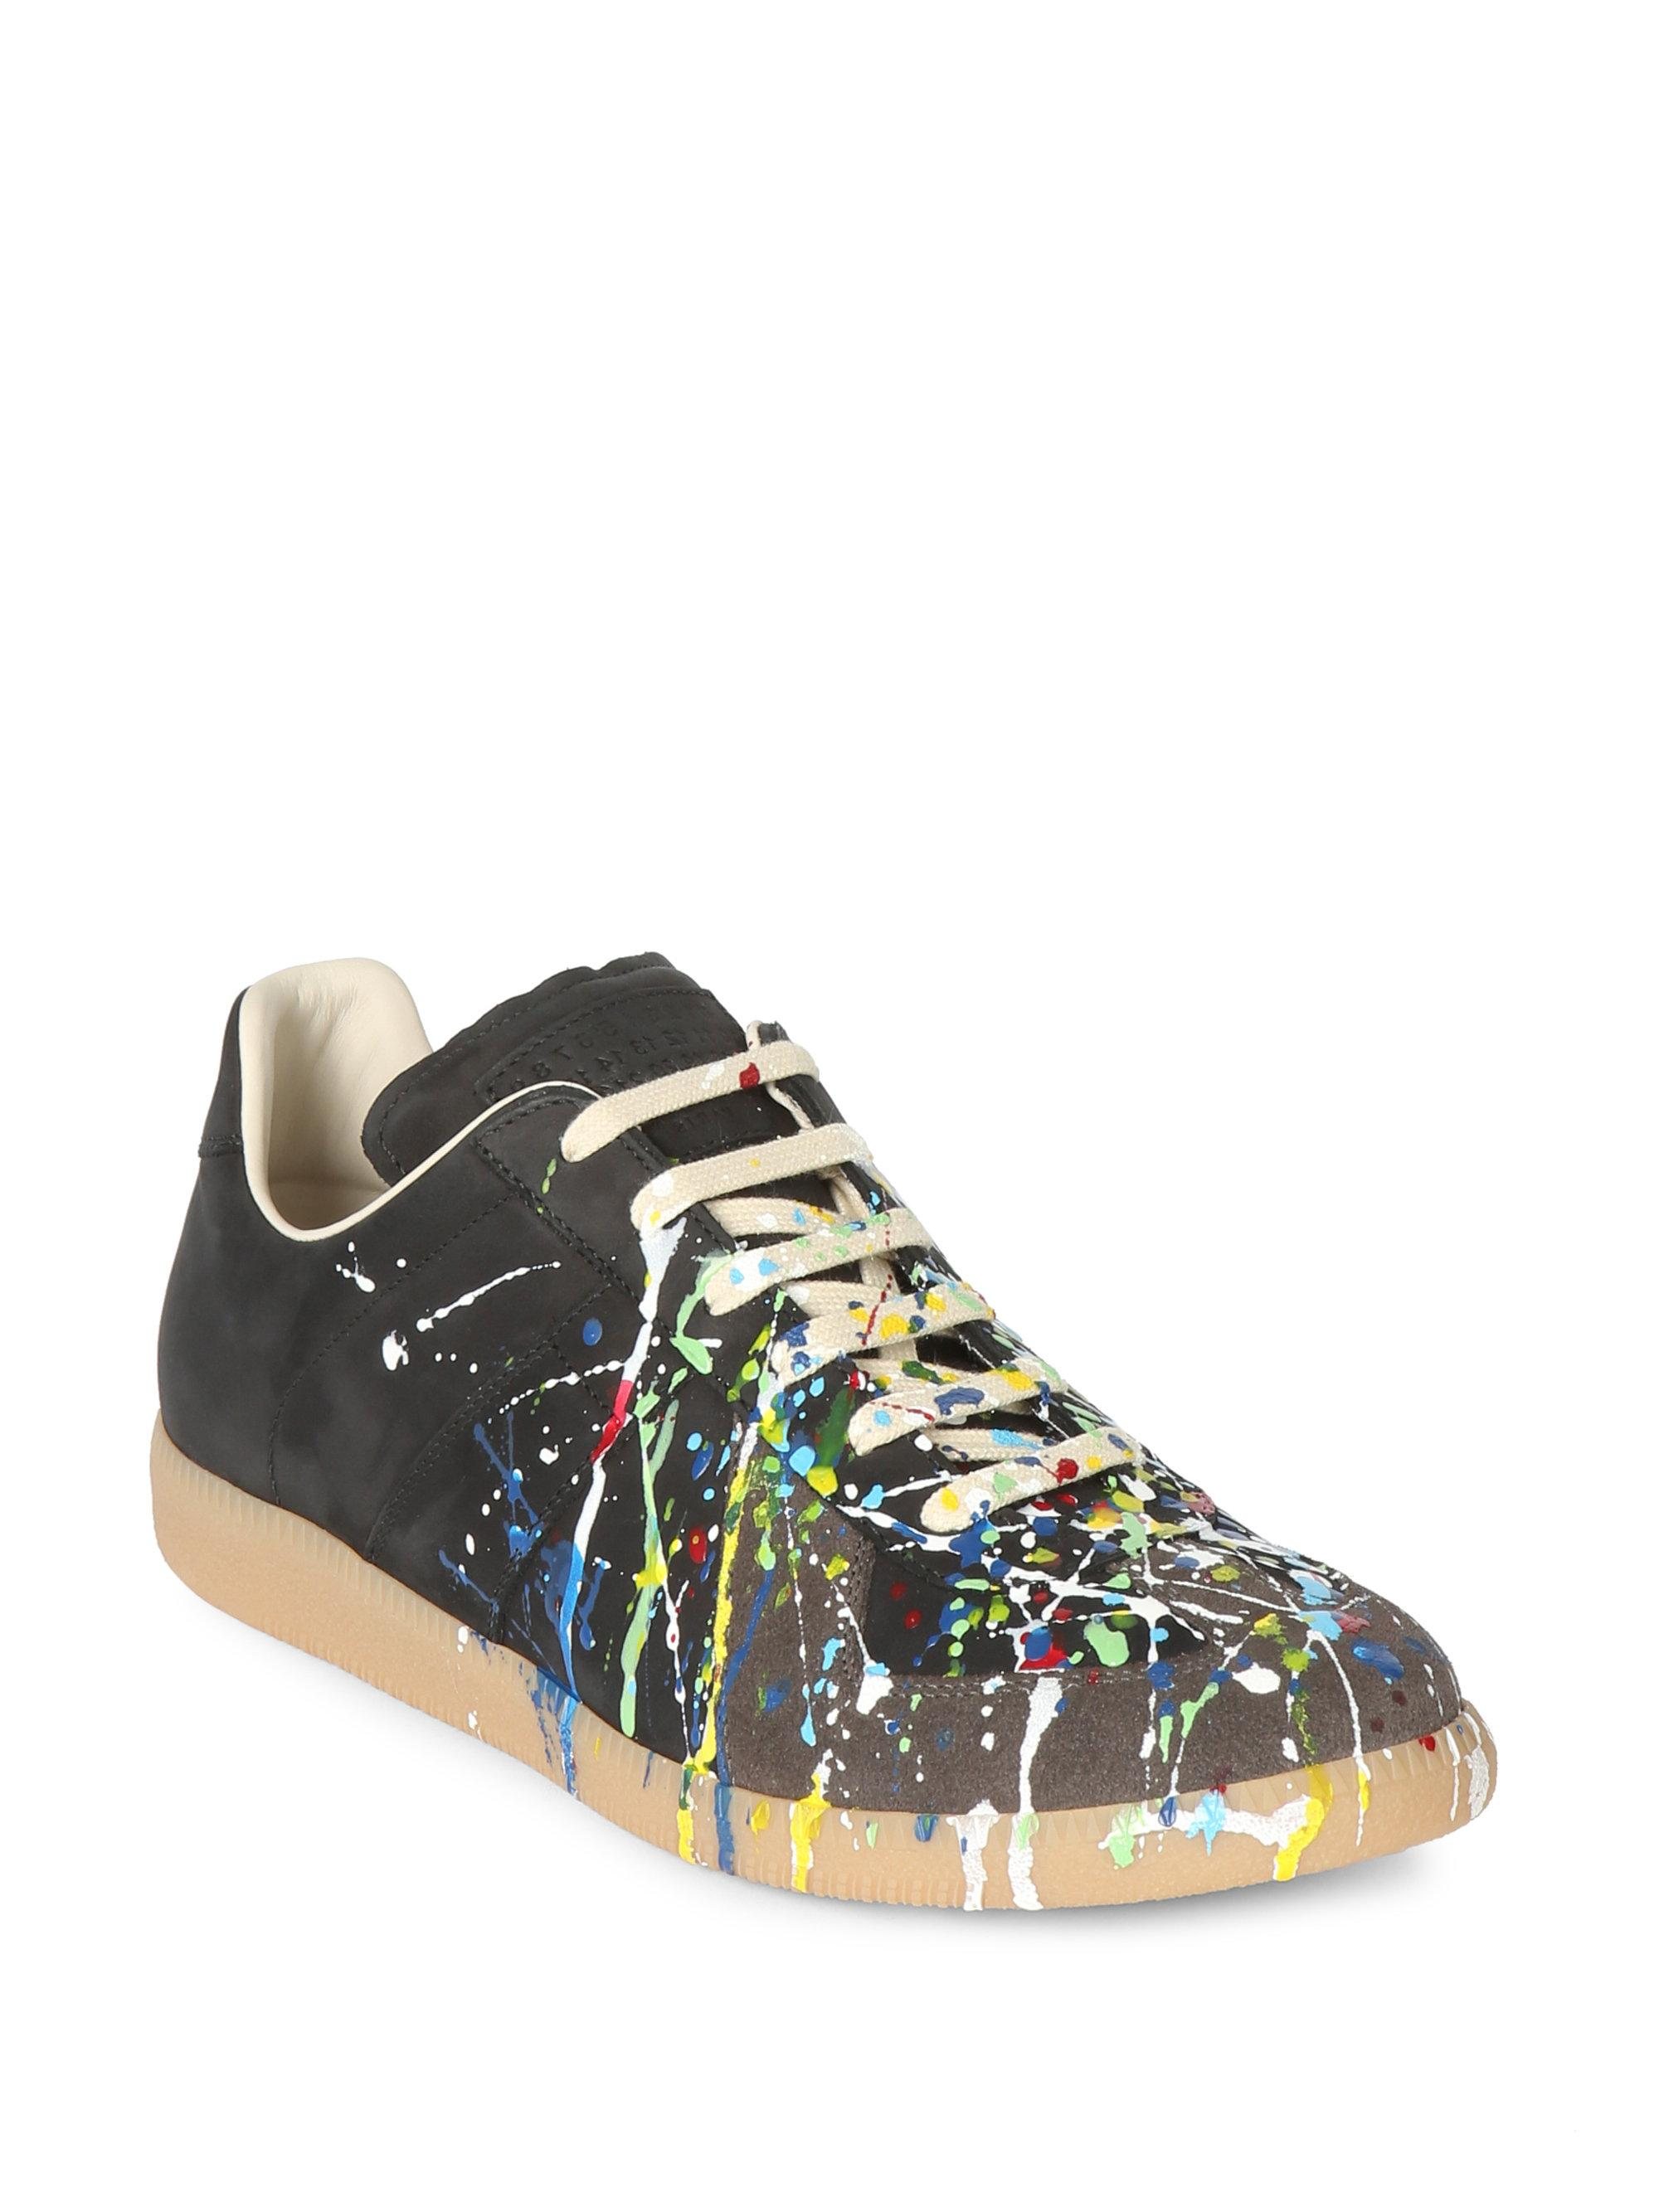 Maison MargielaPainter Low-Top Replica Sneakers mrYycASF